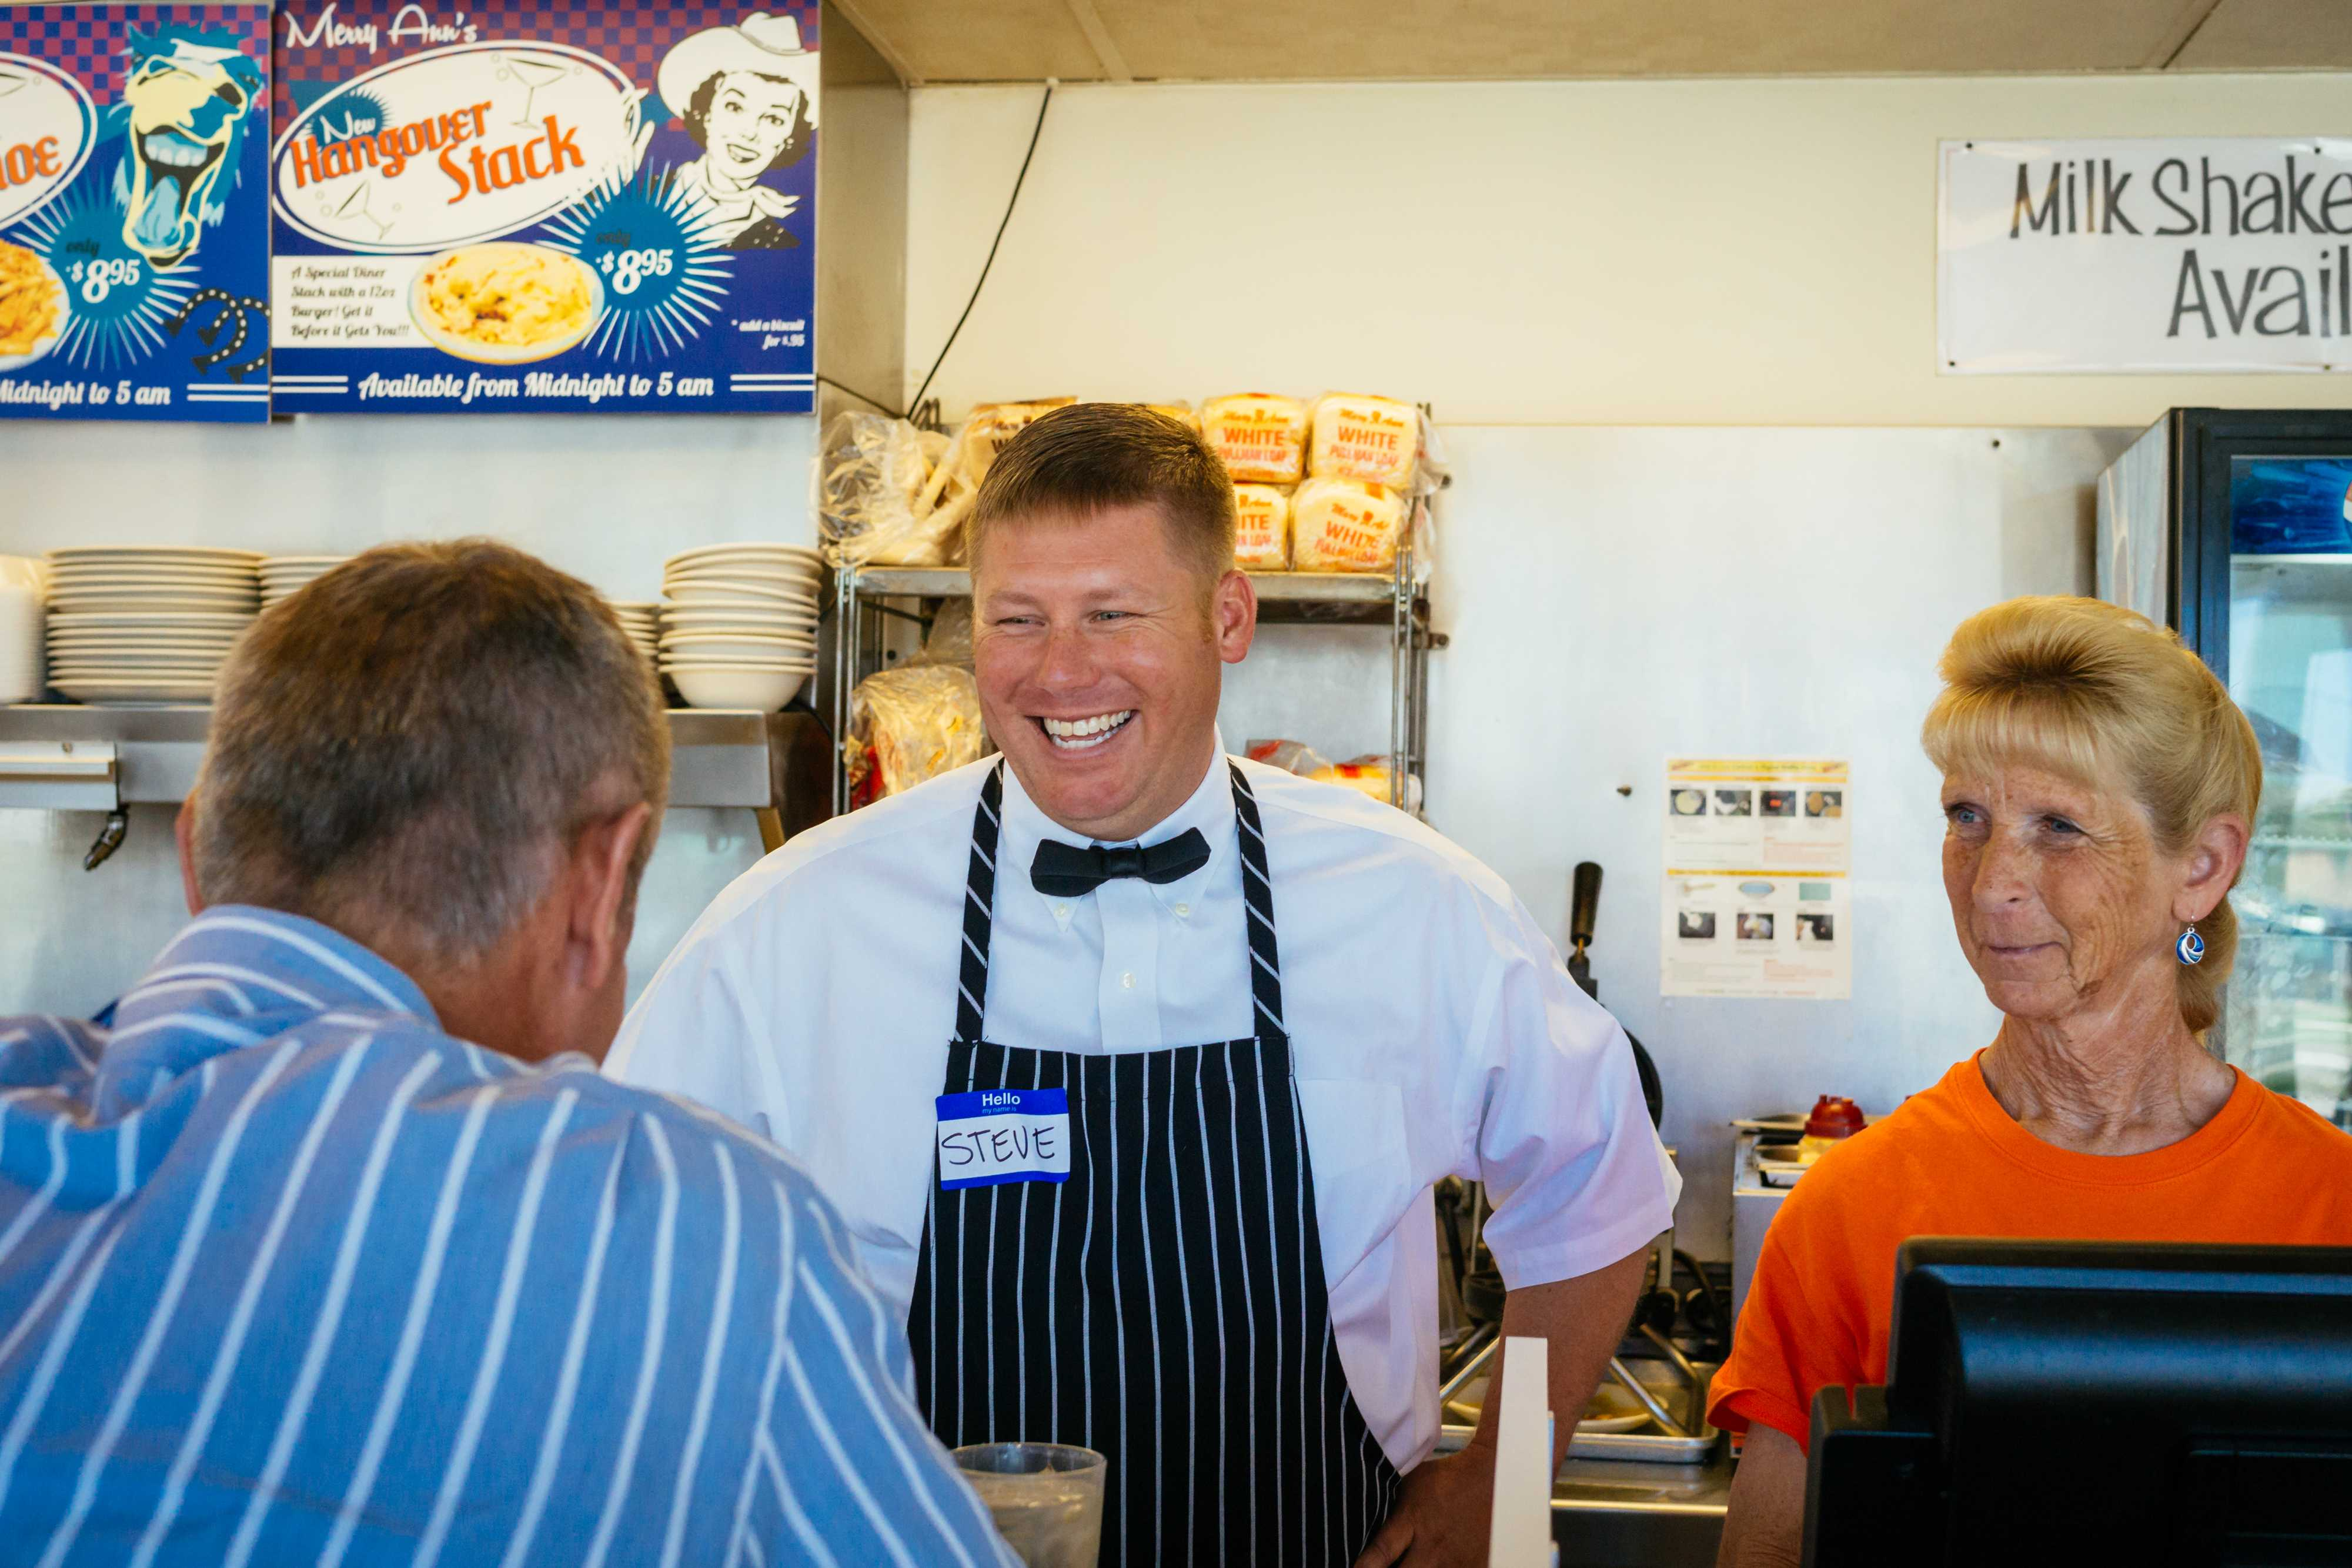 Steve Gardner, a financial planner, chats with a customer at Merry Ann's Diner on Tuesday,June 2.